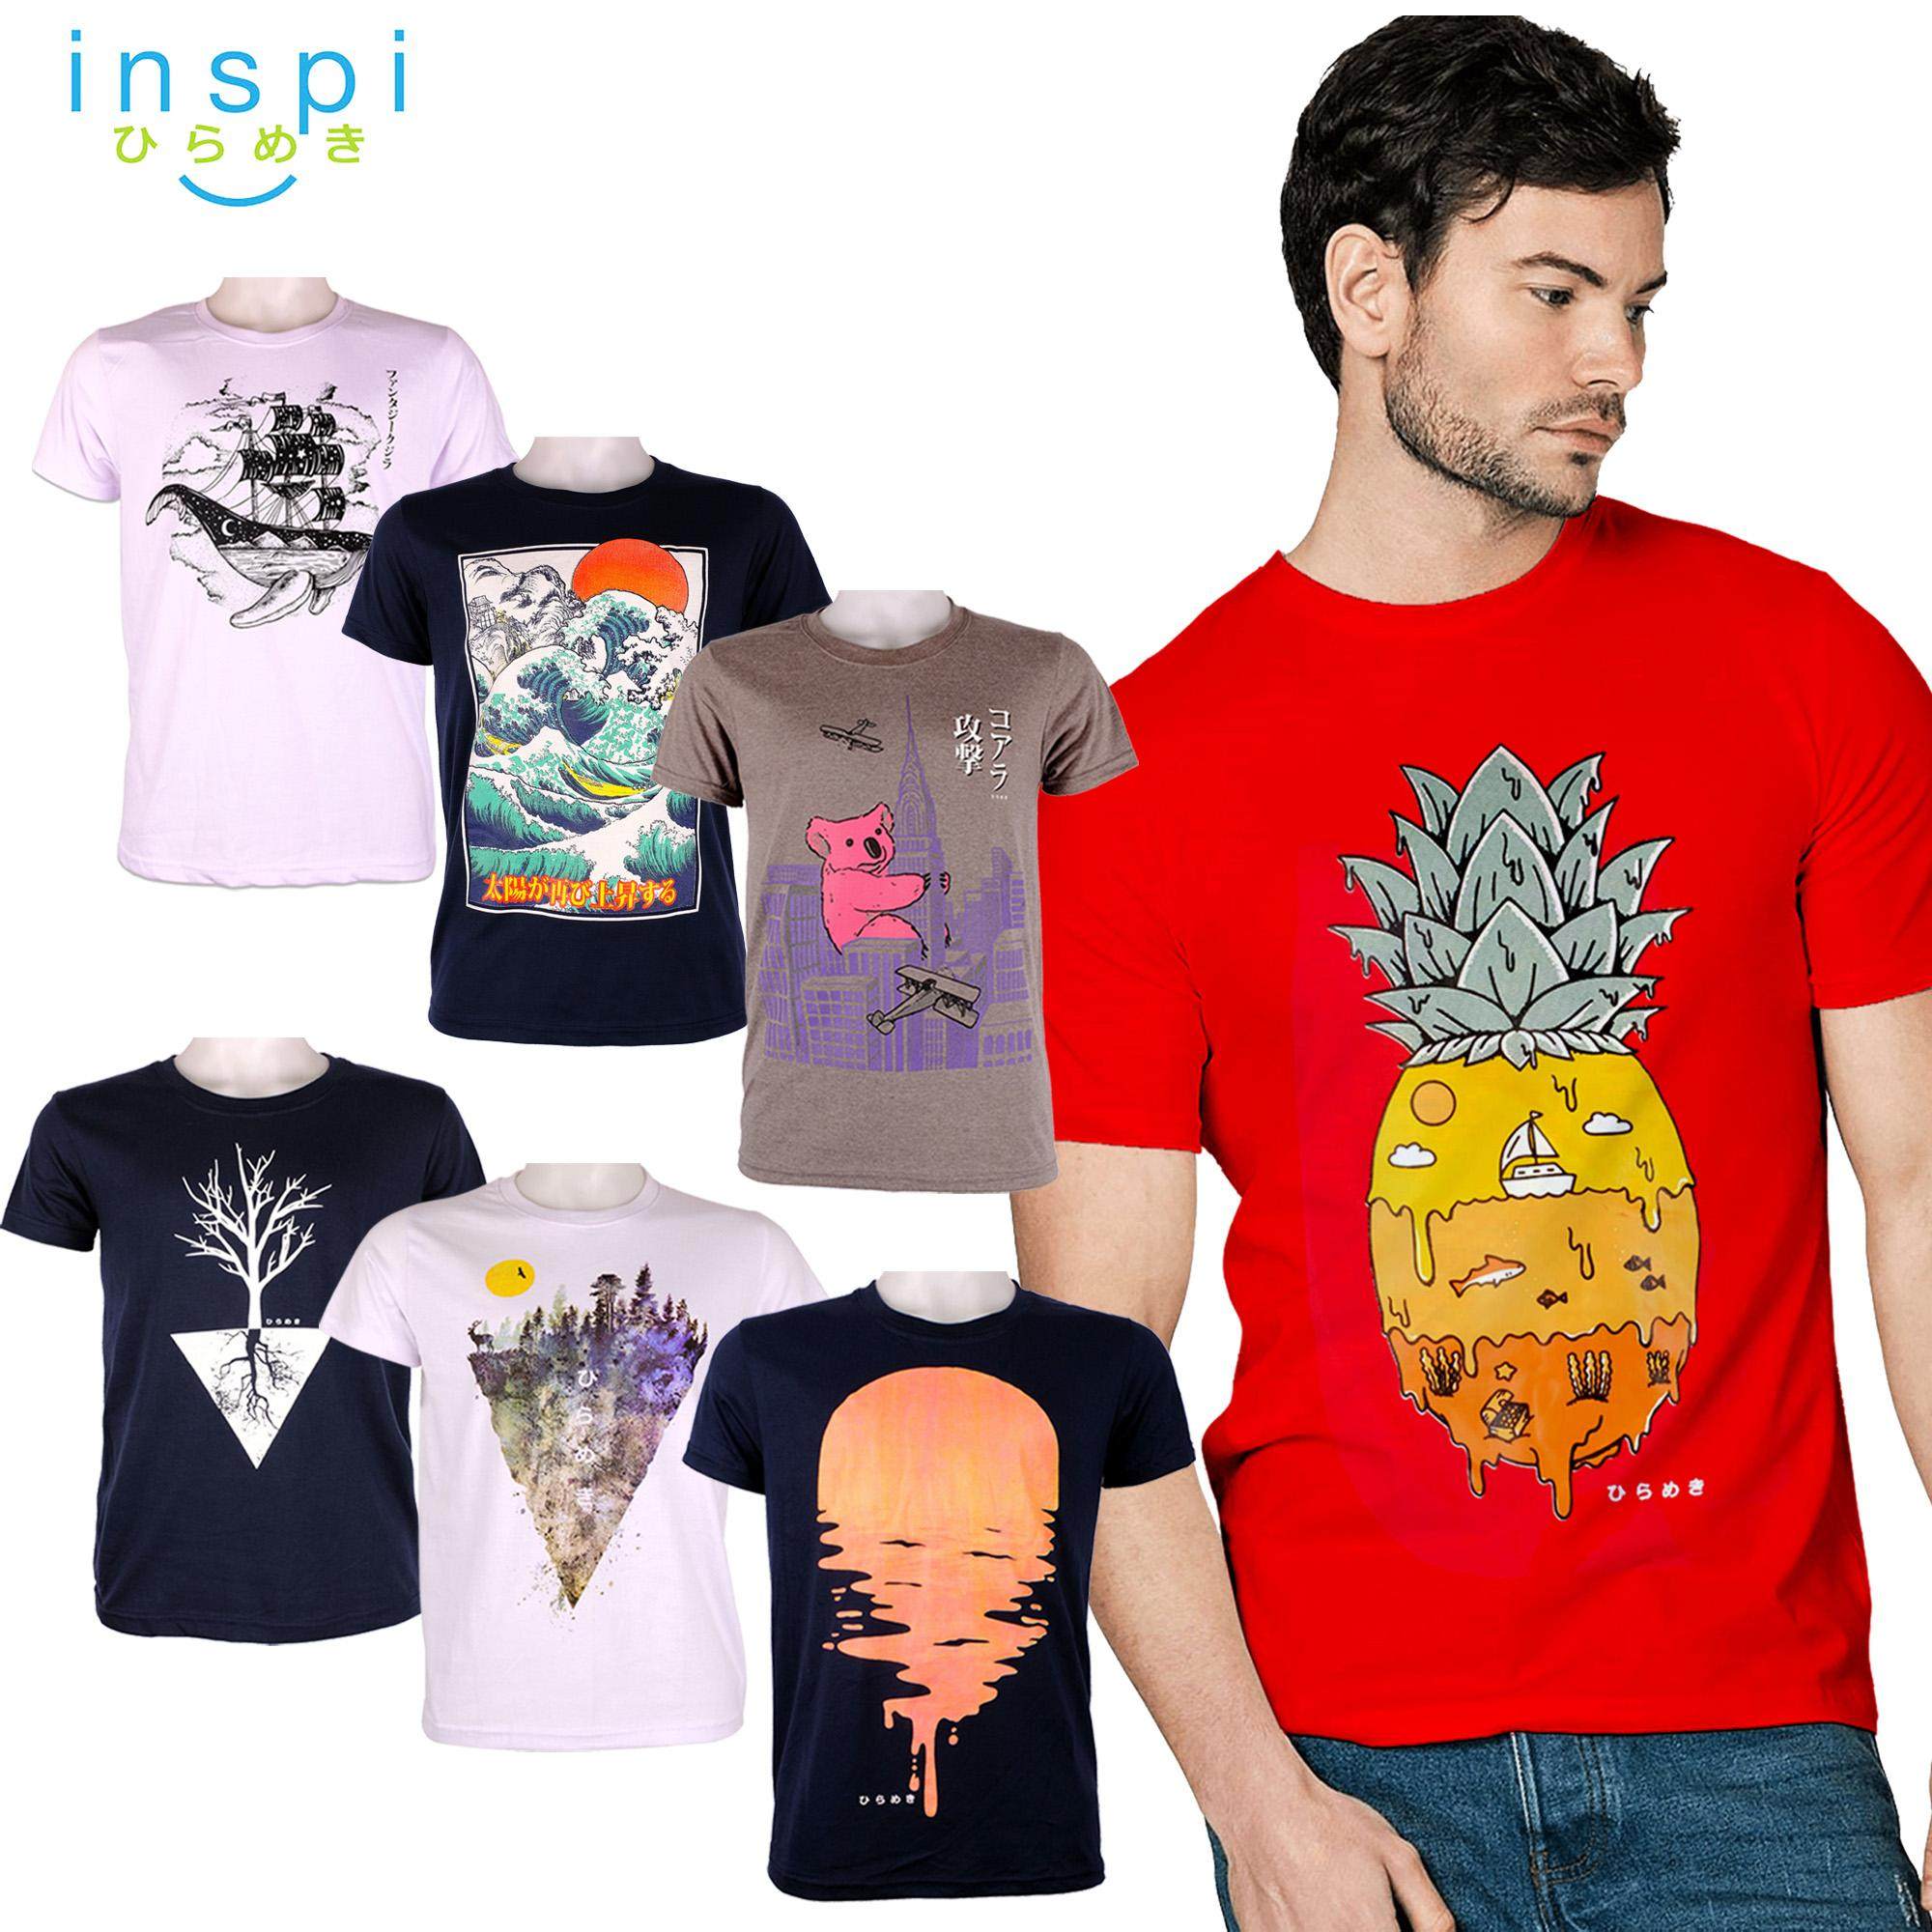 7706005b83d0 INSPI Tees Nature Collection tshirt printed graphic tee Mens t shirt shirts  for men tshirts sale